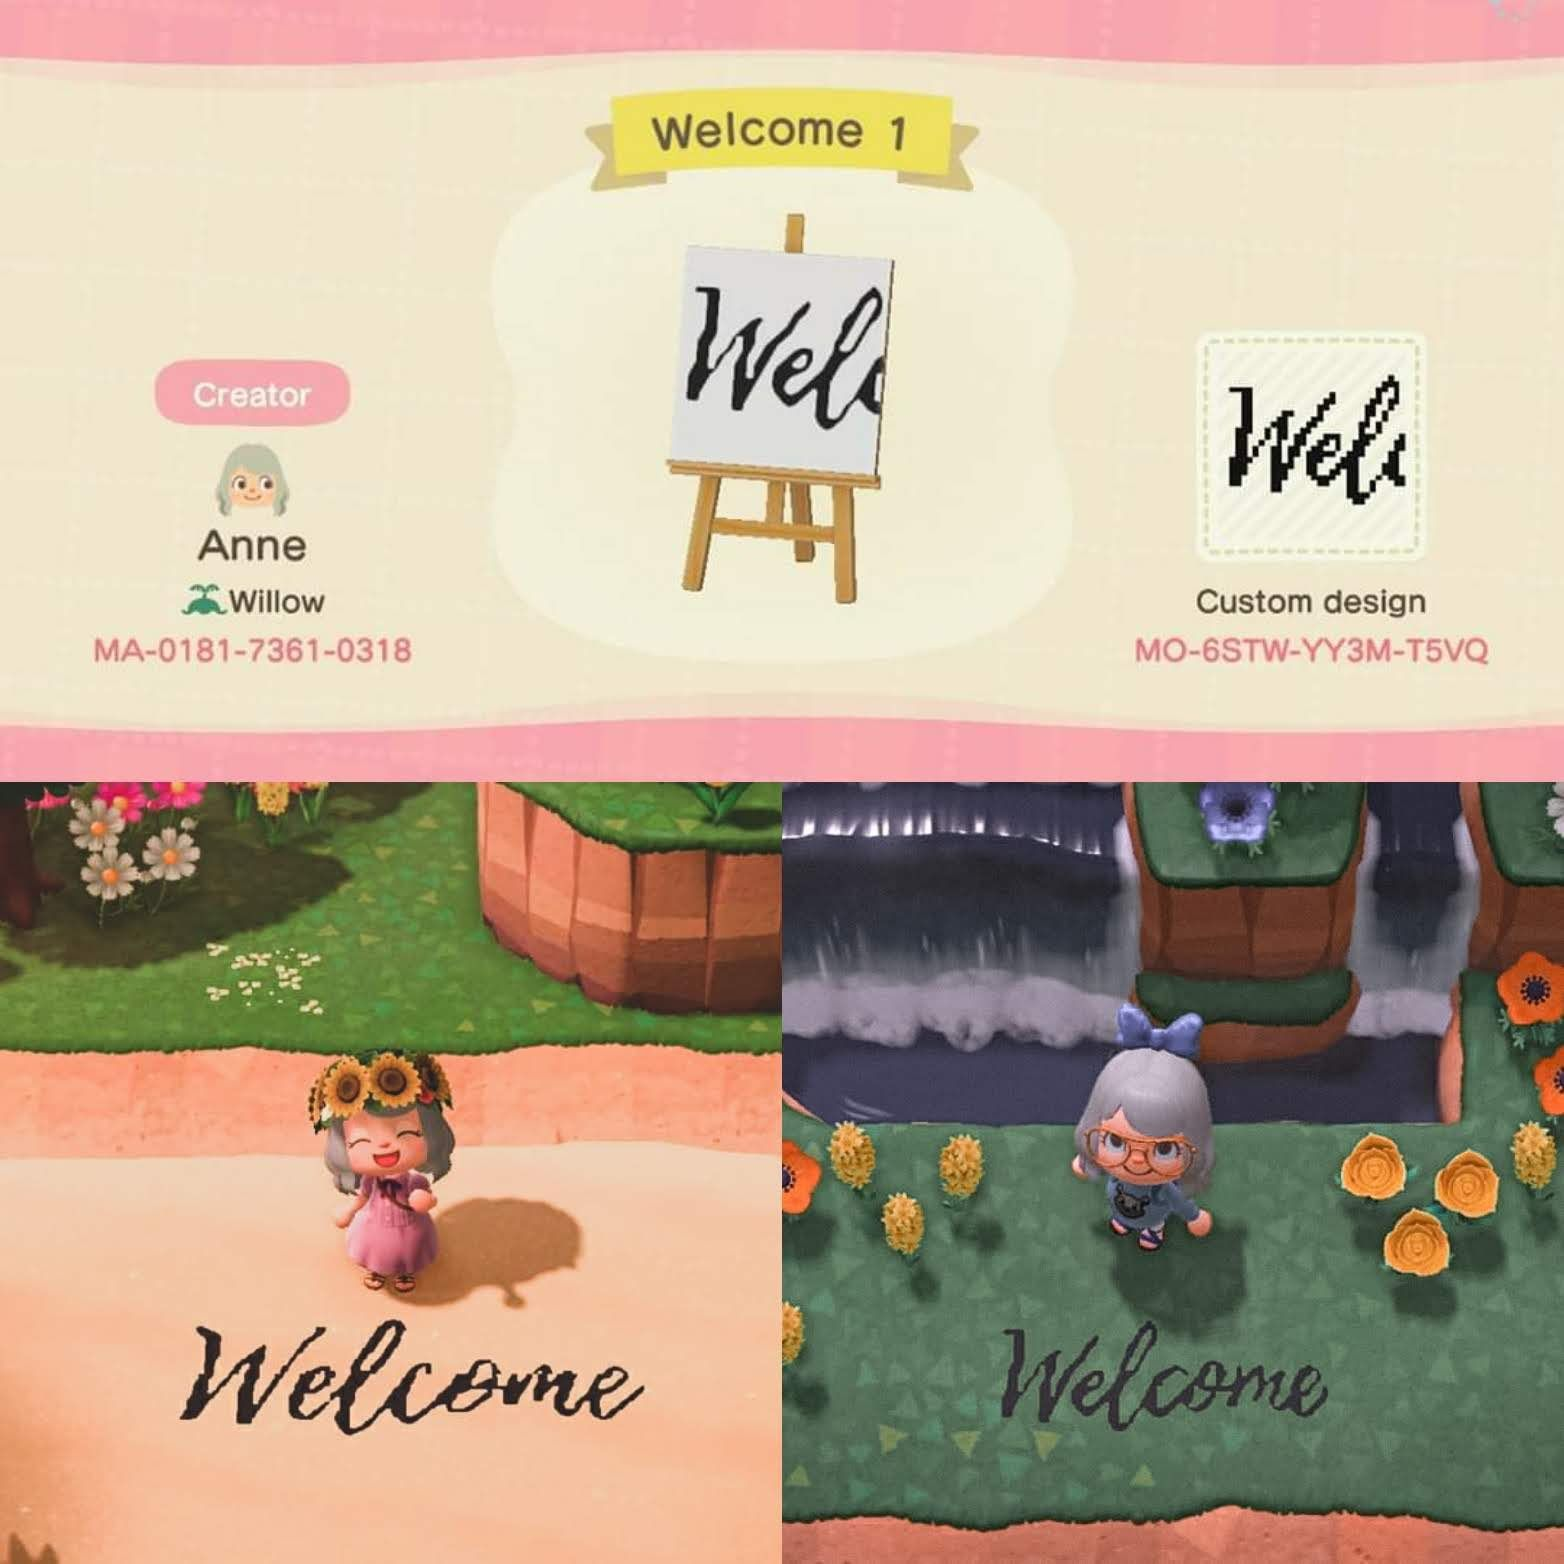 Acnh designs on twitter in 2020 animal crossing game